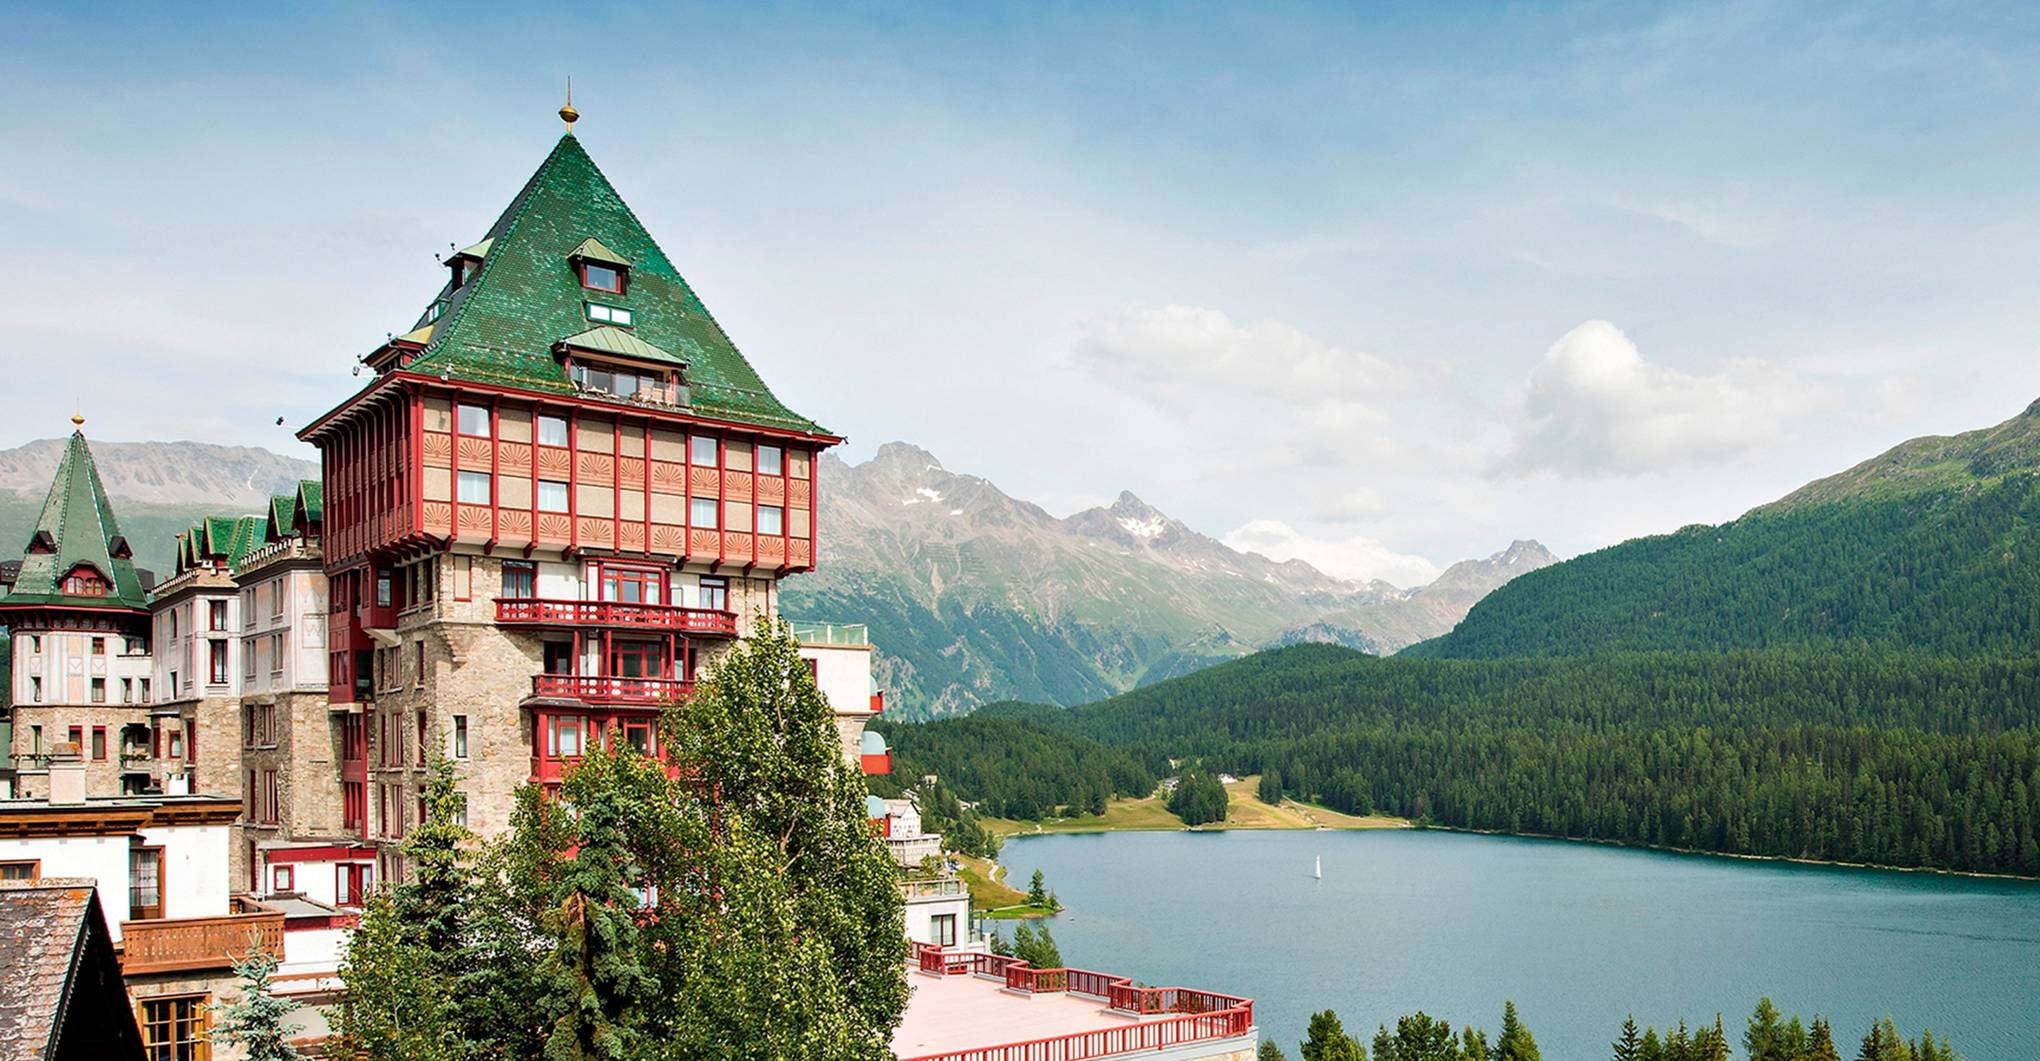 Win three nights at Badrutt's Palace Hotel in Switzerland